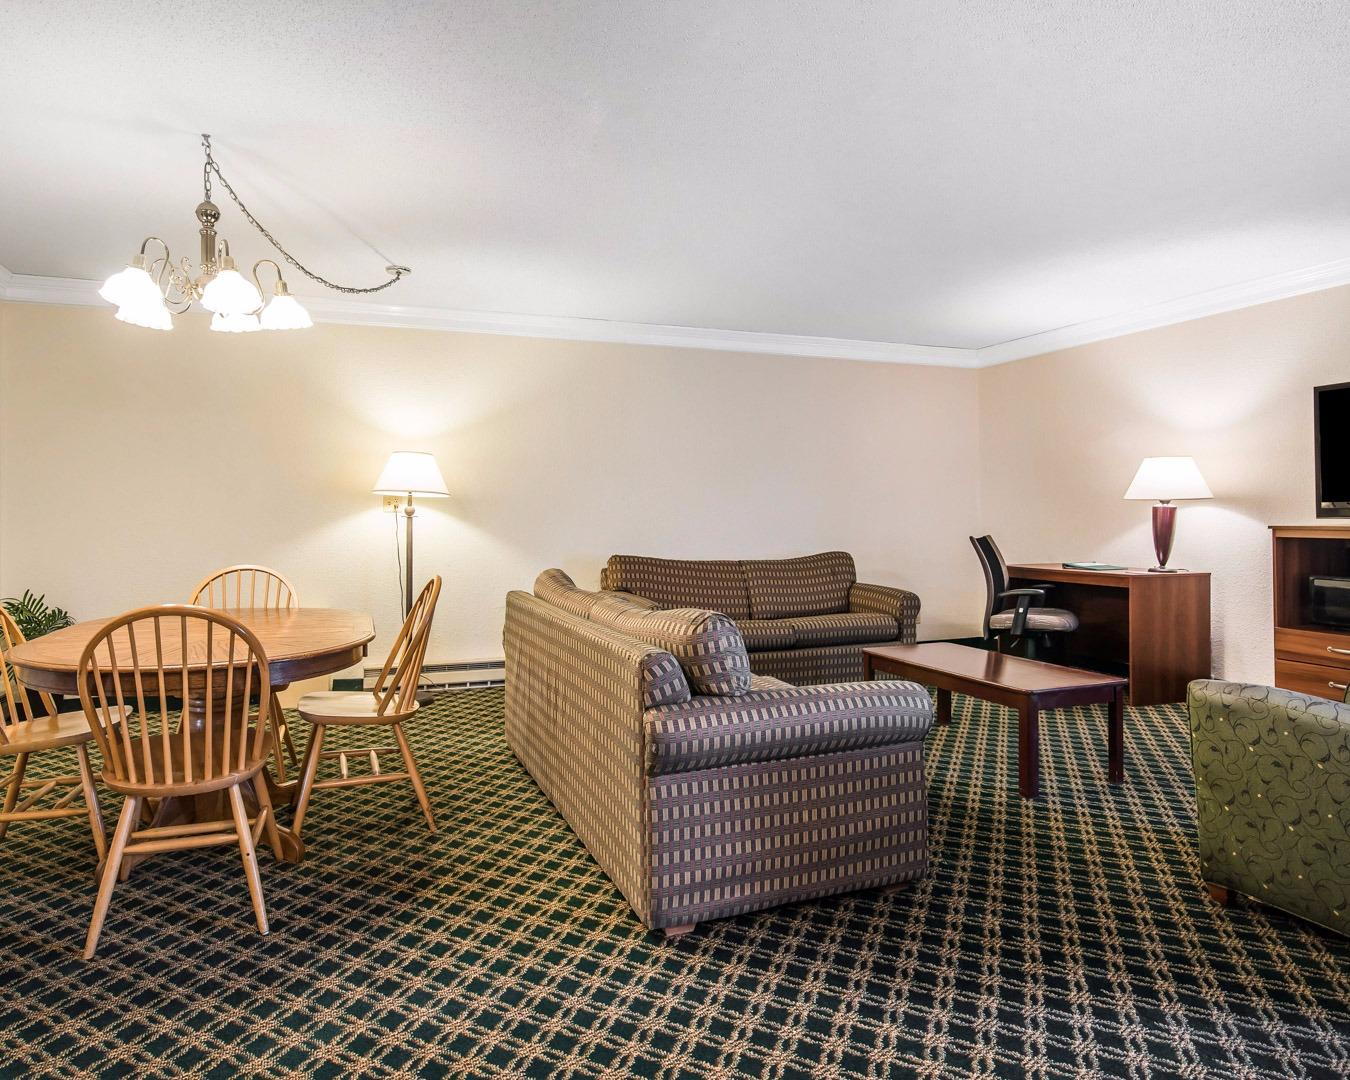 quality inn coupons near me in rutland 8coupons